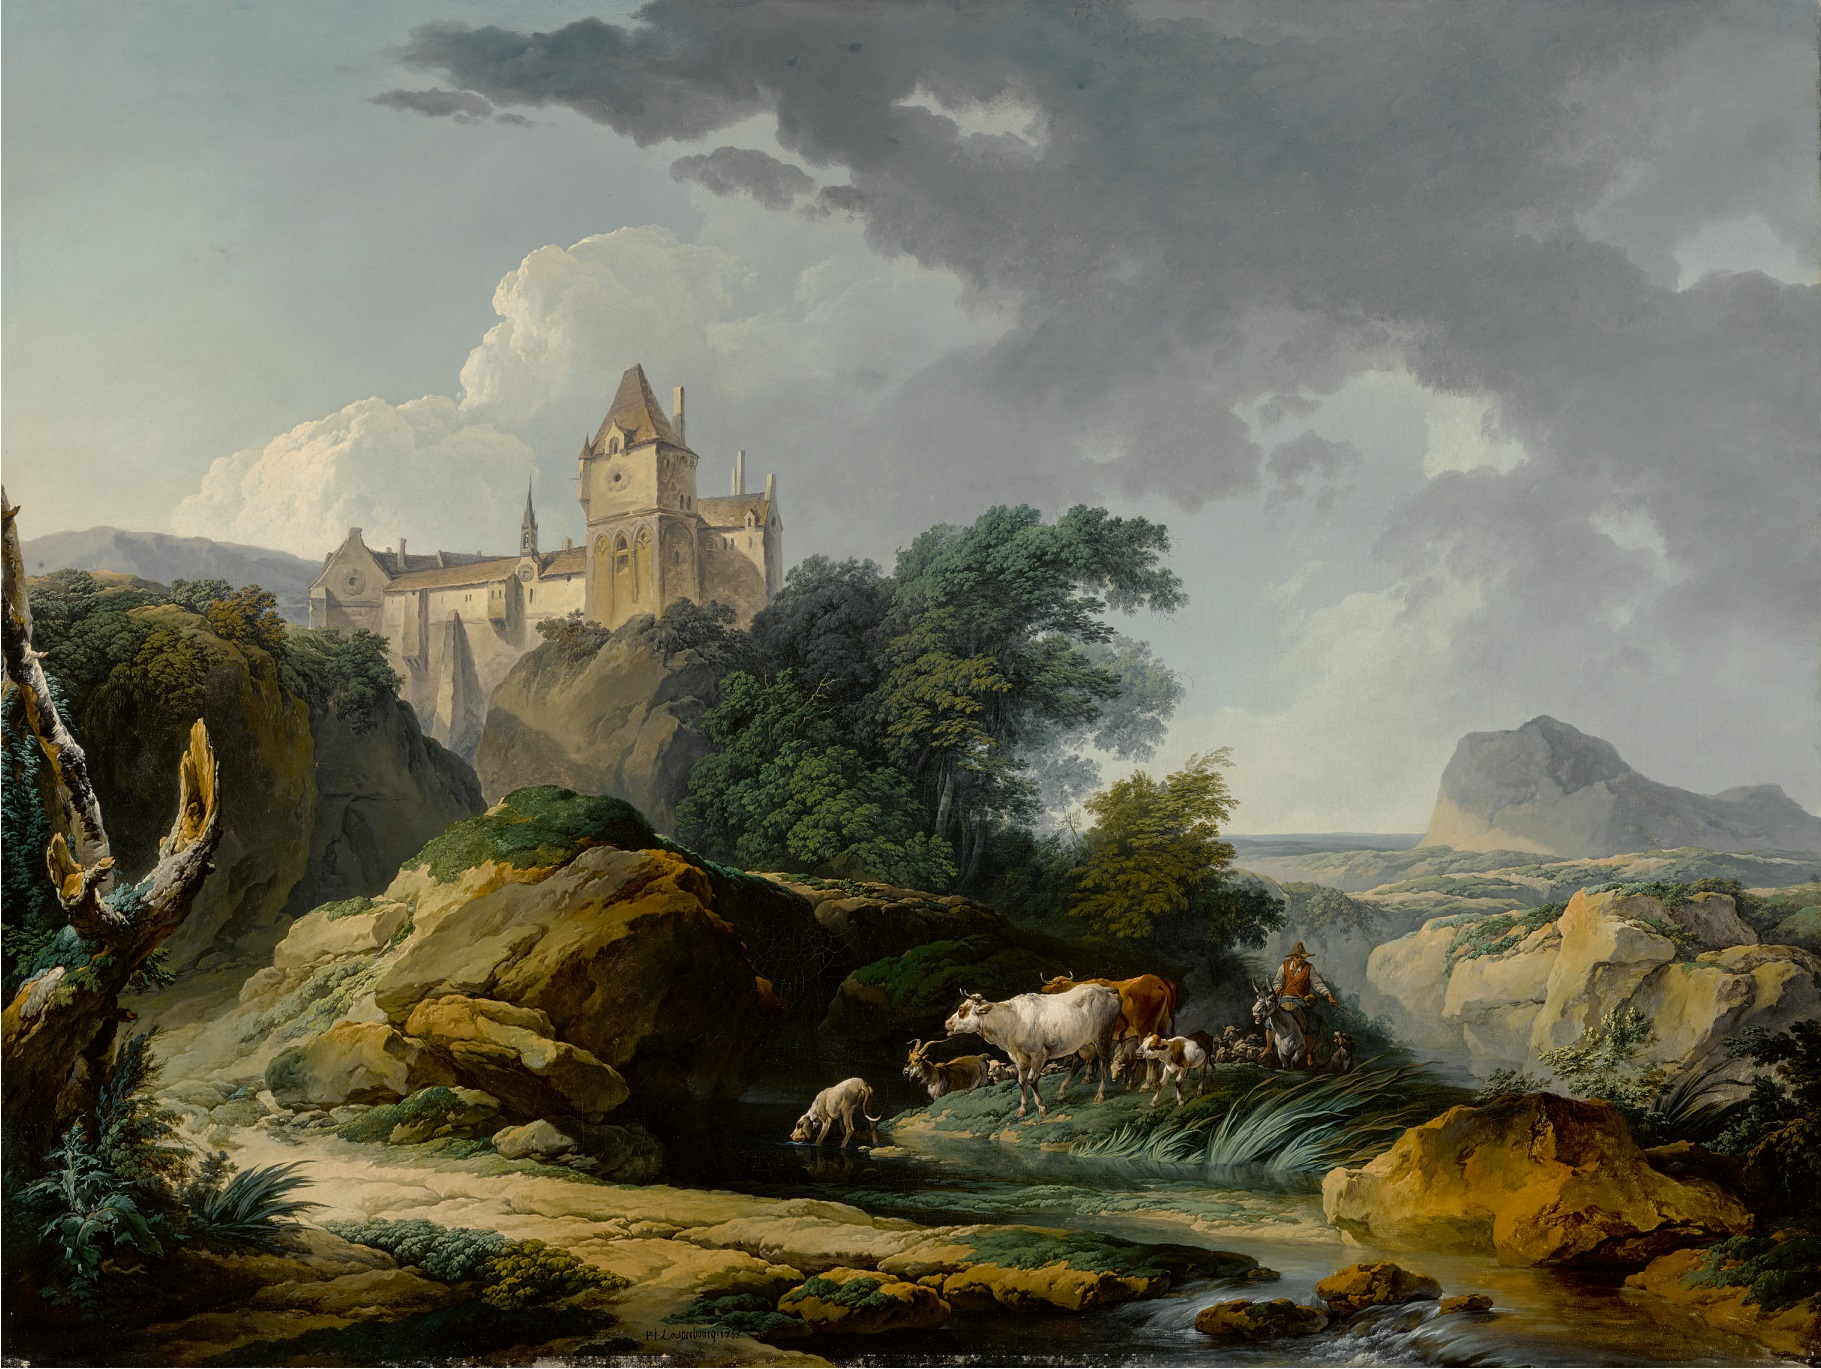 PHILIPPE JACQUES DE LOUTHERBOURG, R.A. (Strasbourg 1740 - 1812 London) -  LANDSCAPE WITH A HERD OF CATTLE, A CASTLE ON A HILL BEYOND, KNOWN AS  MORNING AFTER THE RAIN